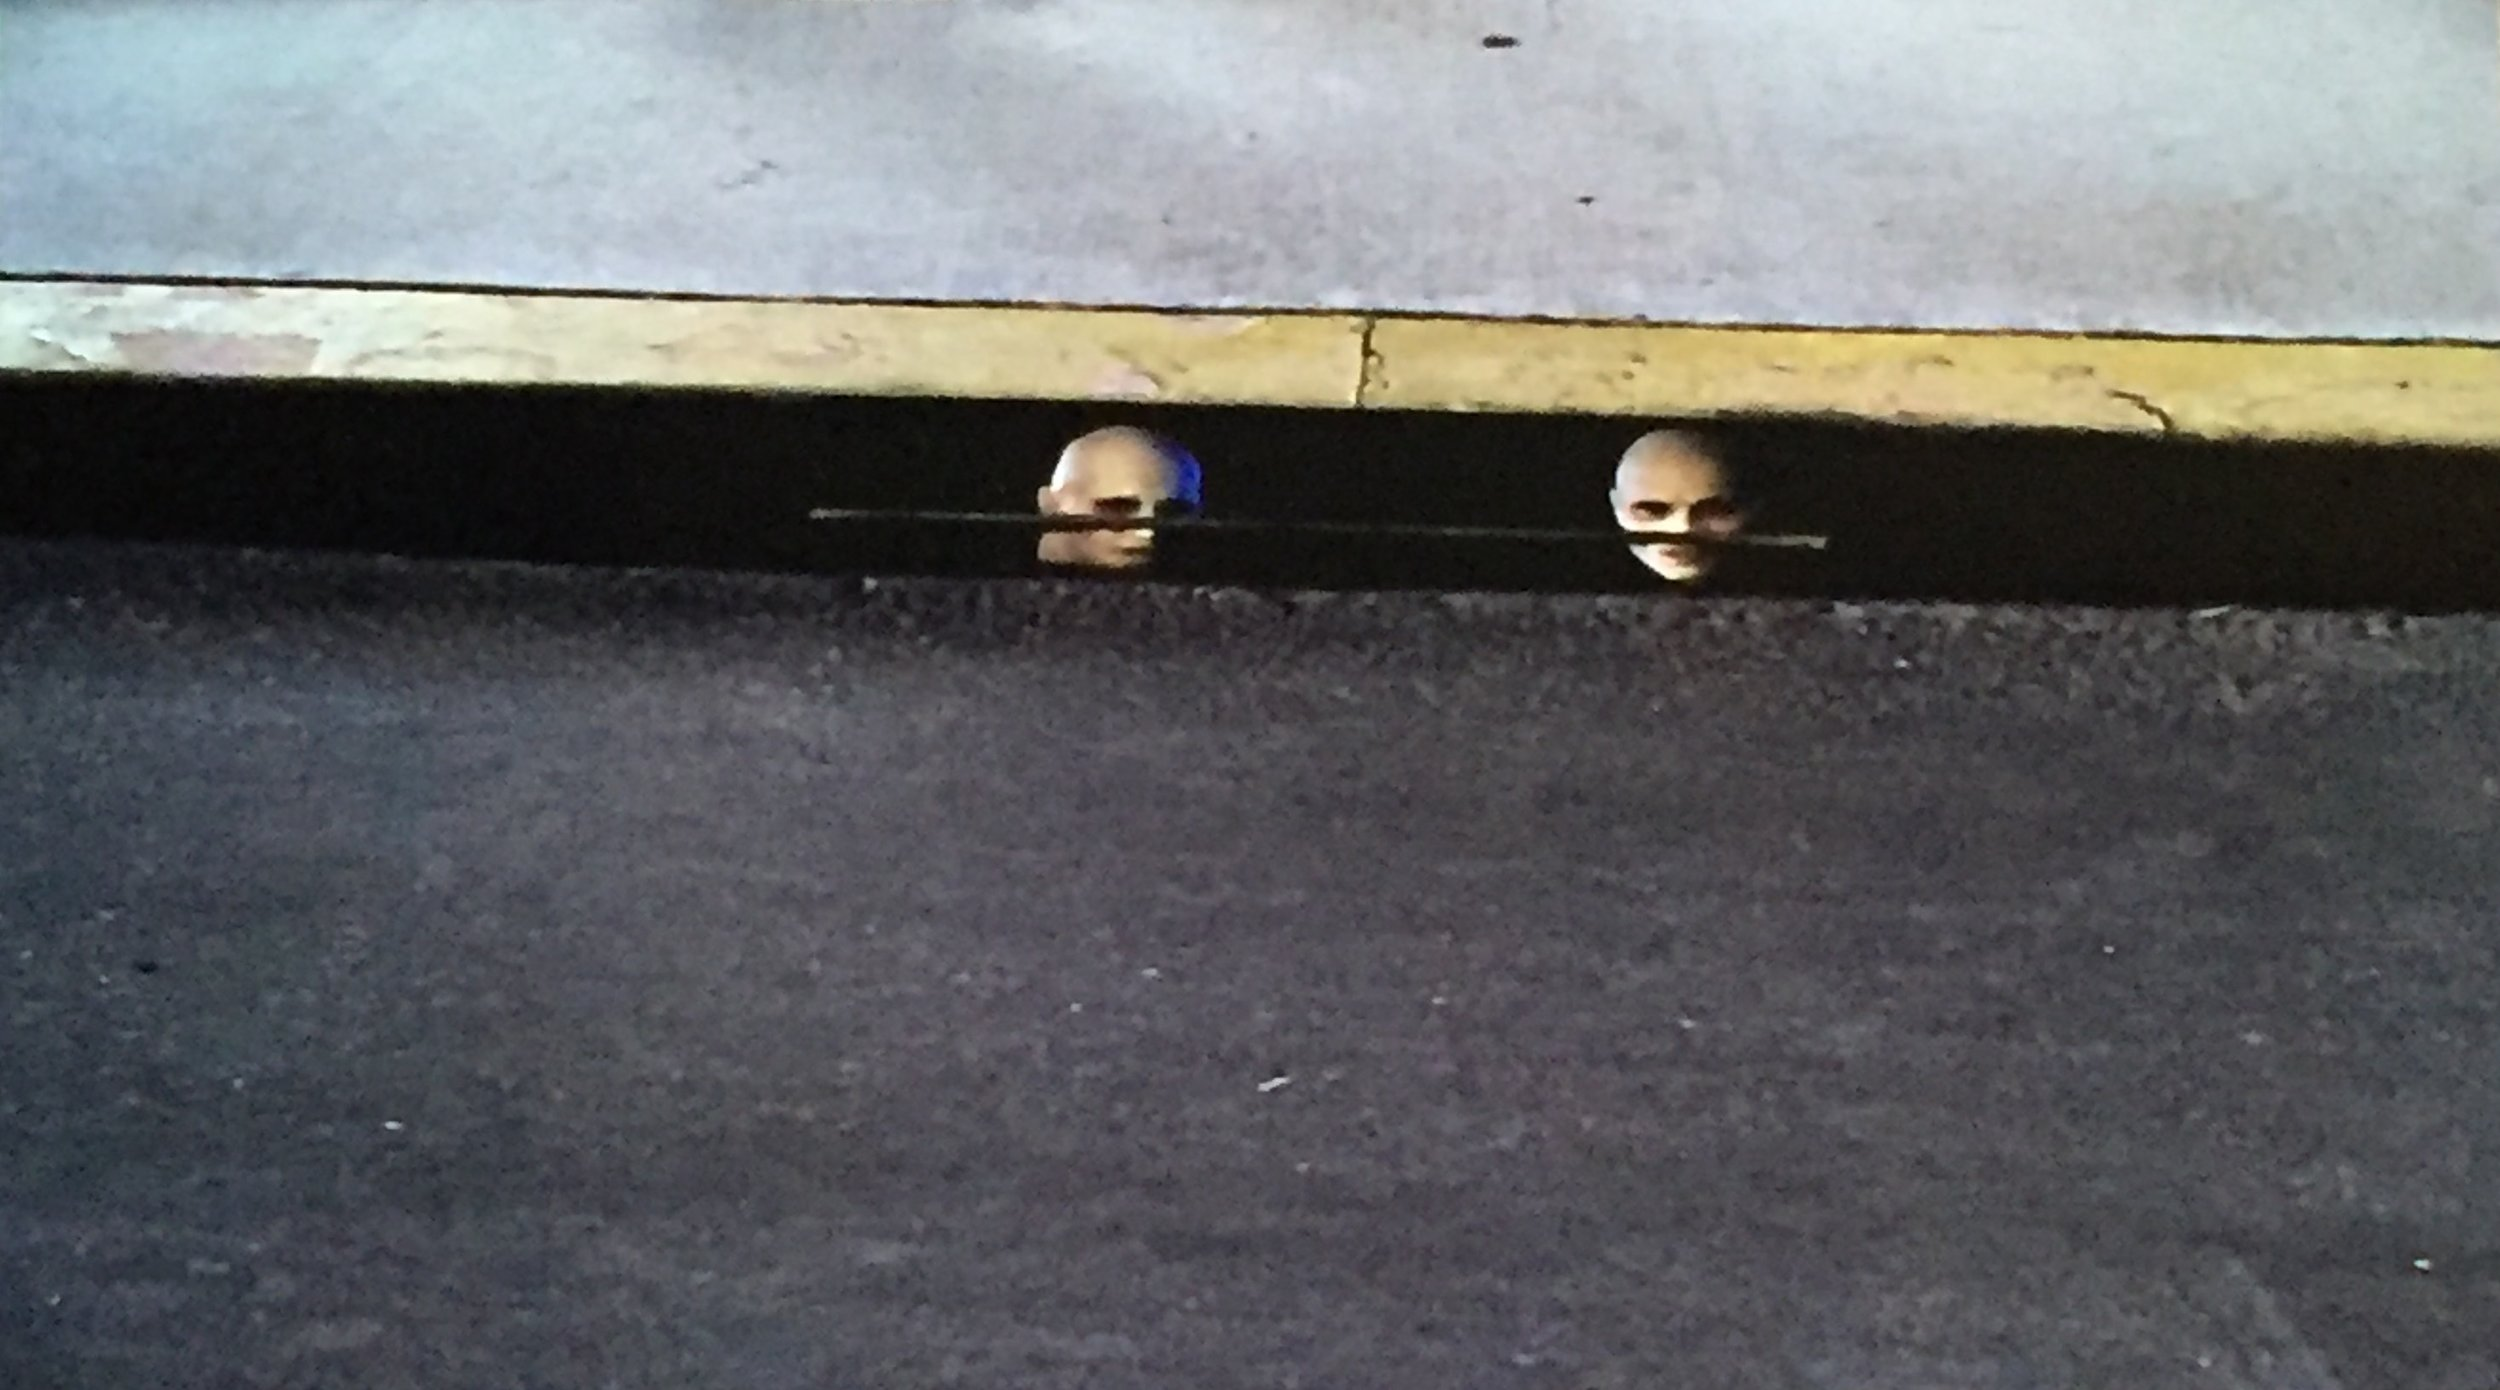 Albino demons in a sewer...